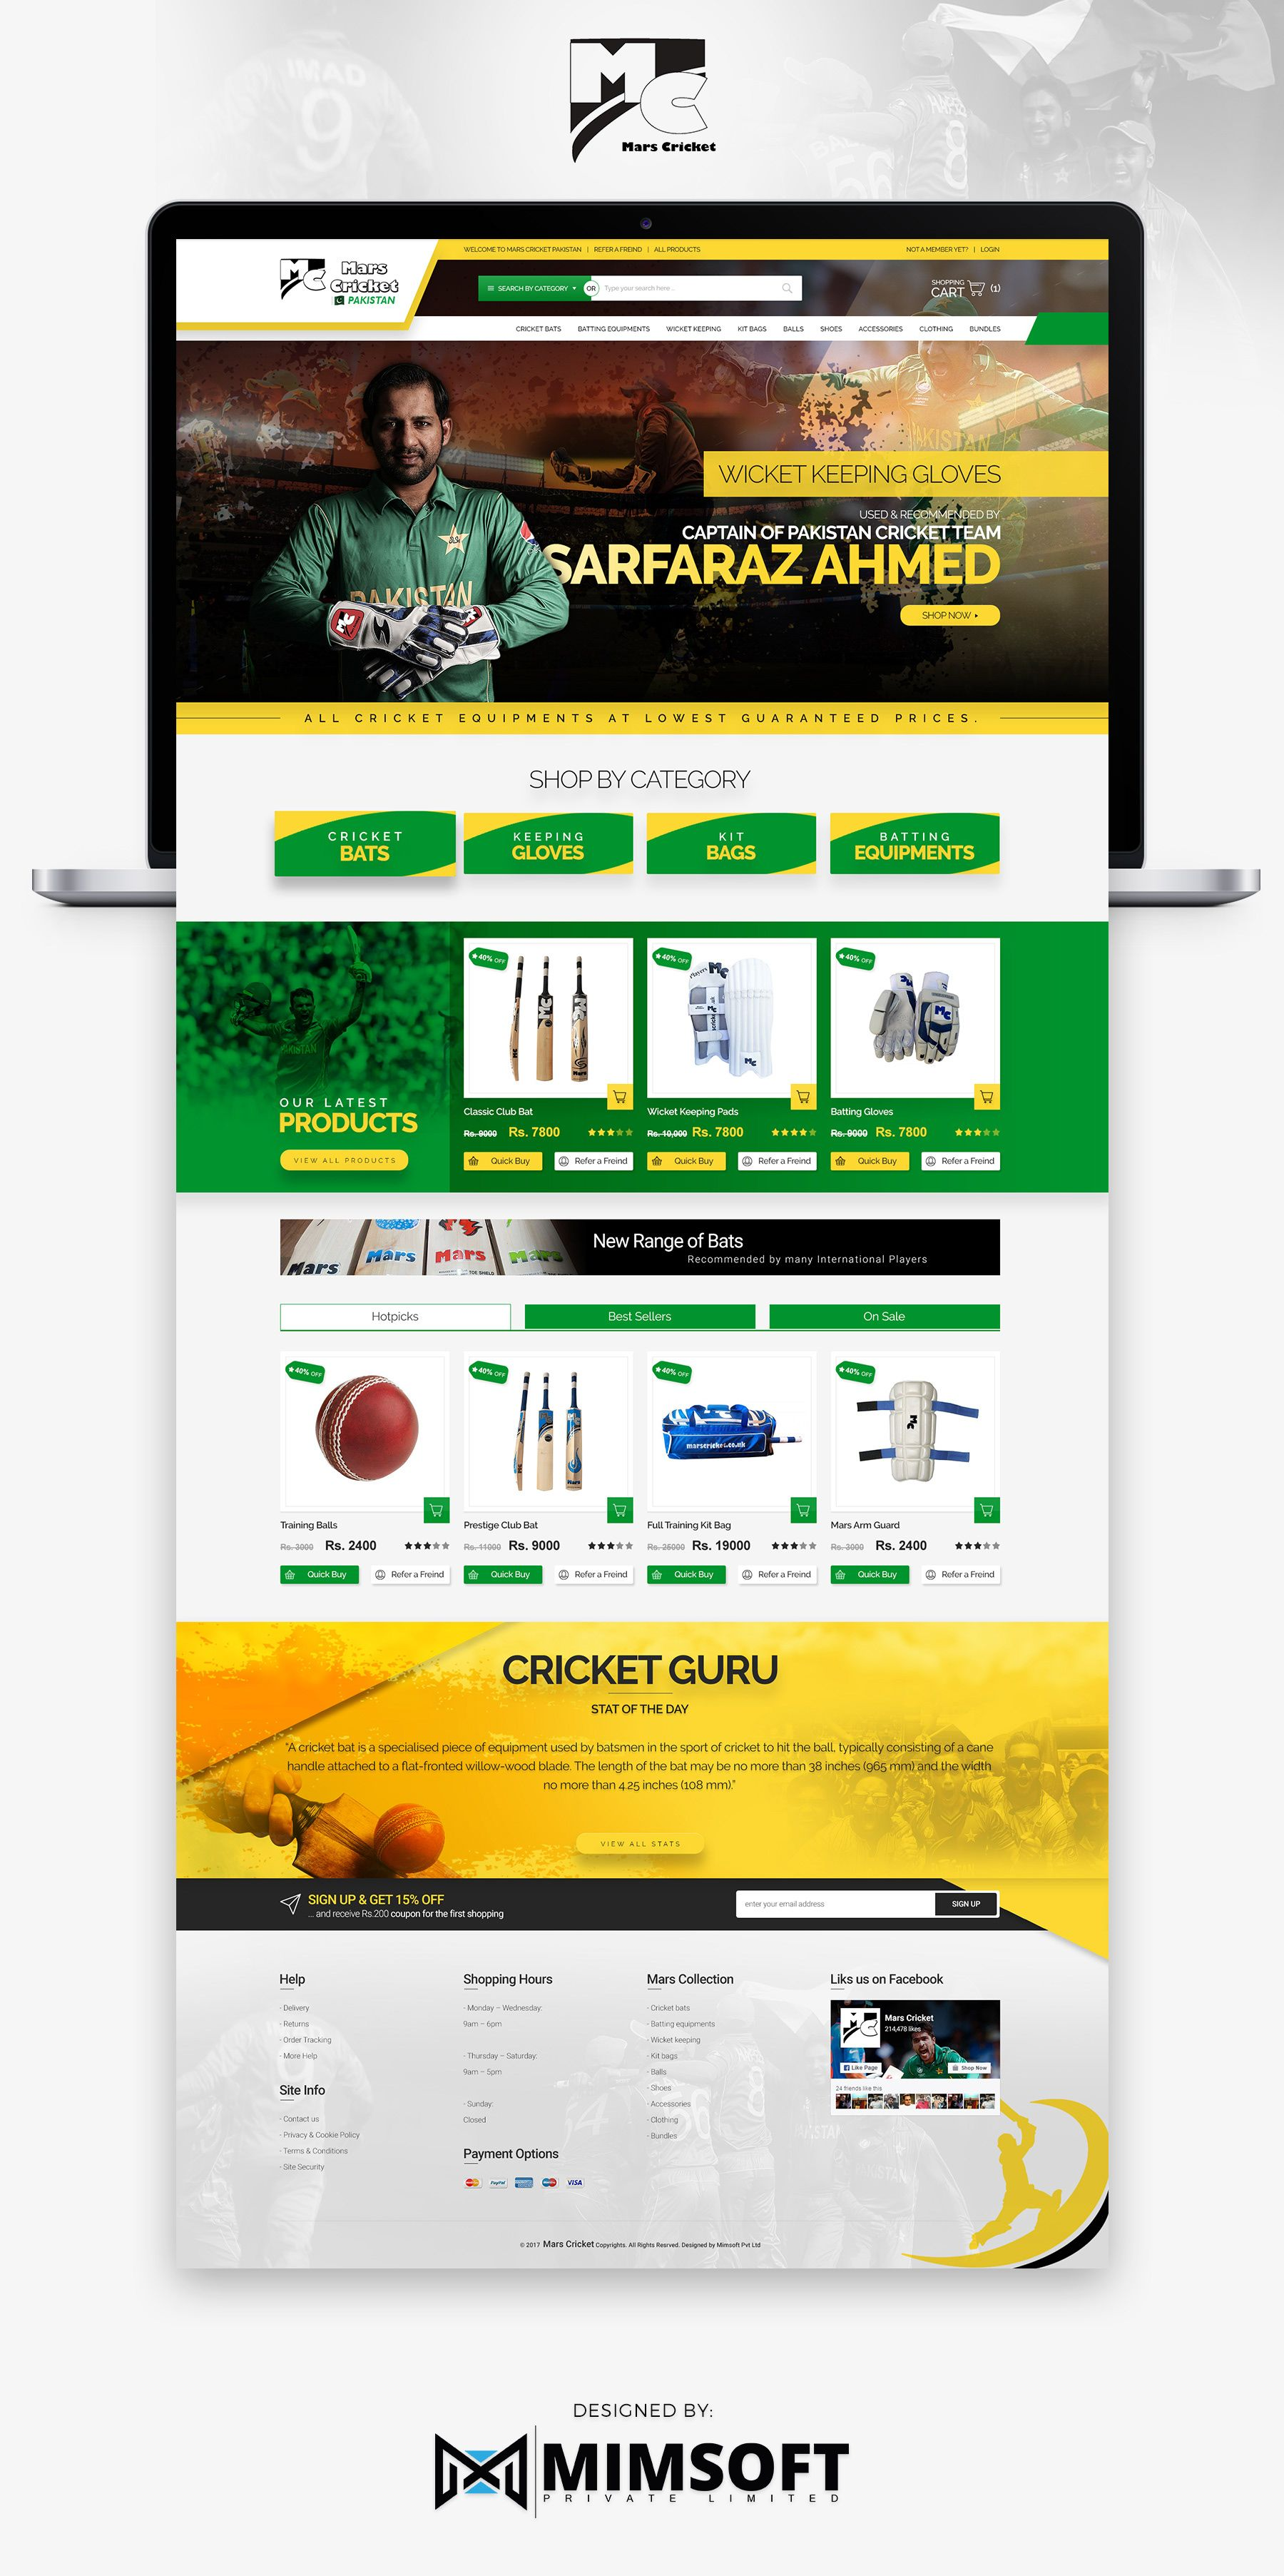 Check out my behance project mars cricket website